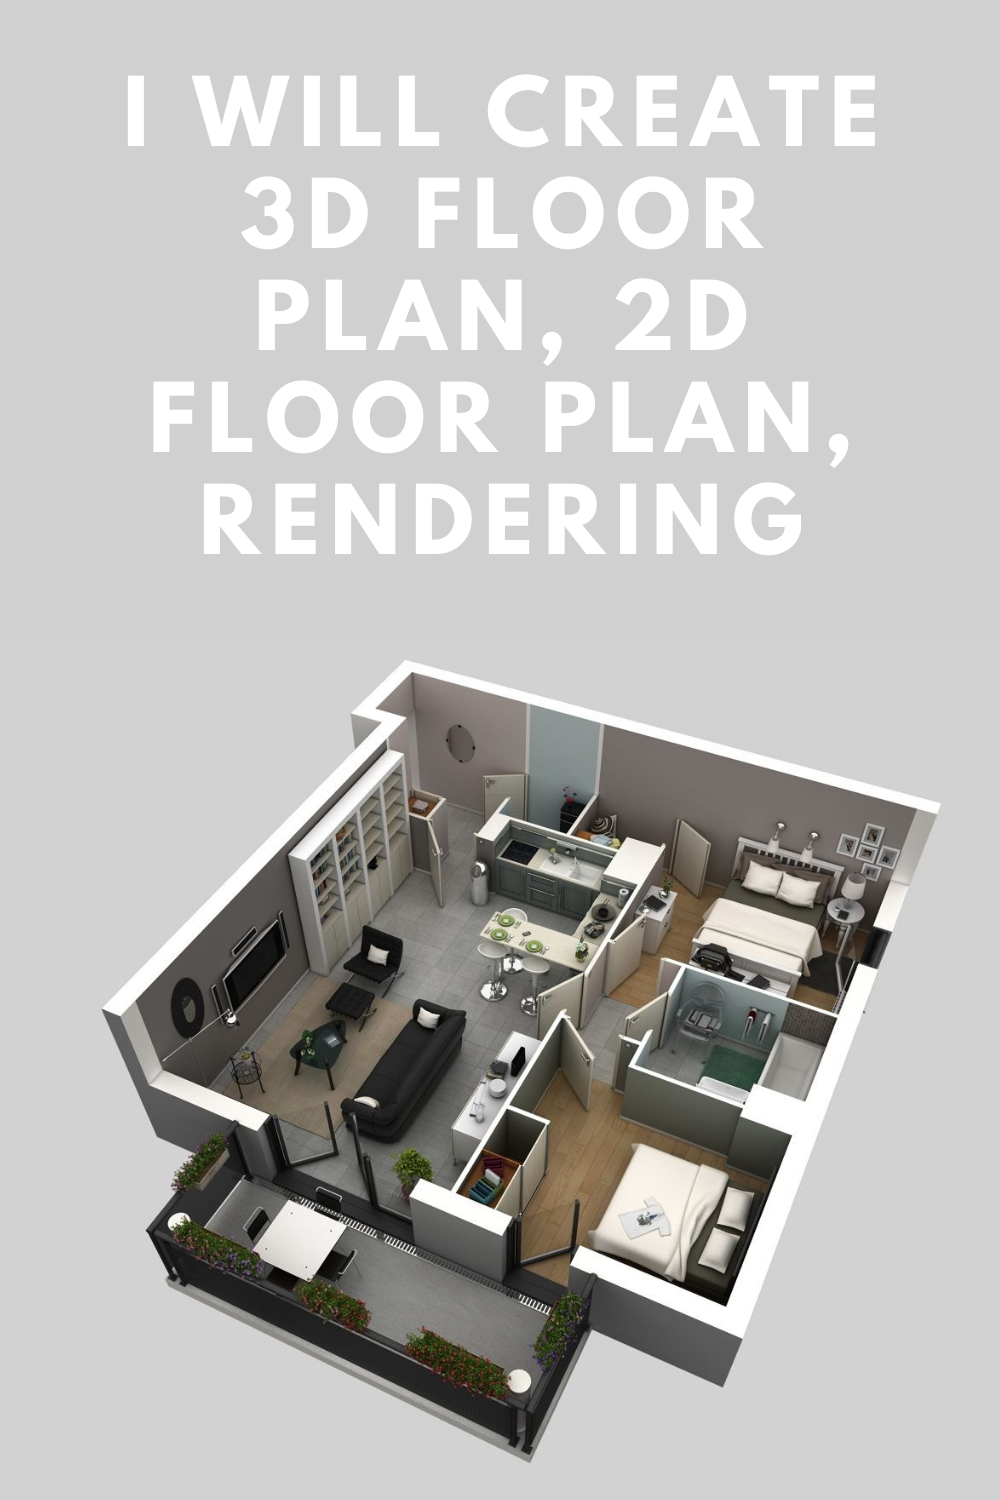 I Will Create 3d Render Realistic 3d Floor Plan Exterior Interior Dream Floor Plans One Level House Plans Modular Home Floor Plans Barndominium Floor Plans